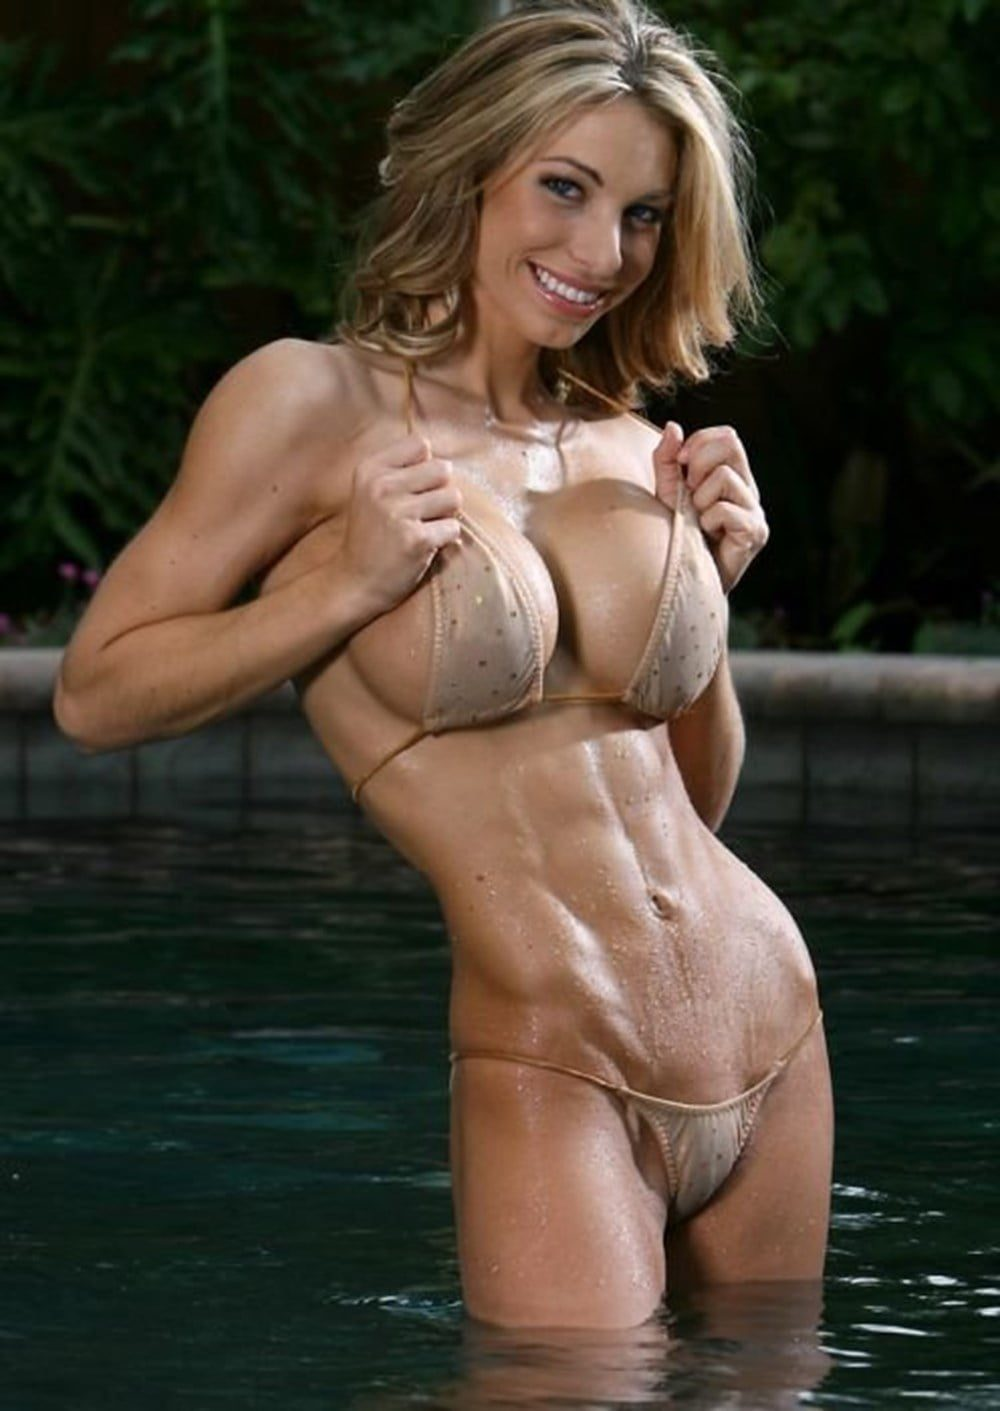 Muscular Girls Who Are Outstanding With Their Appearance 8